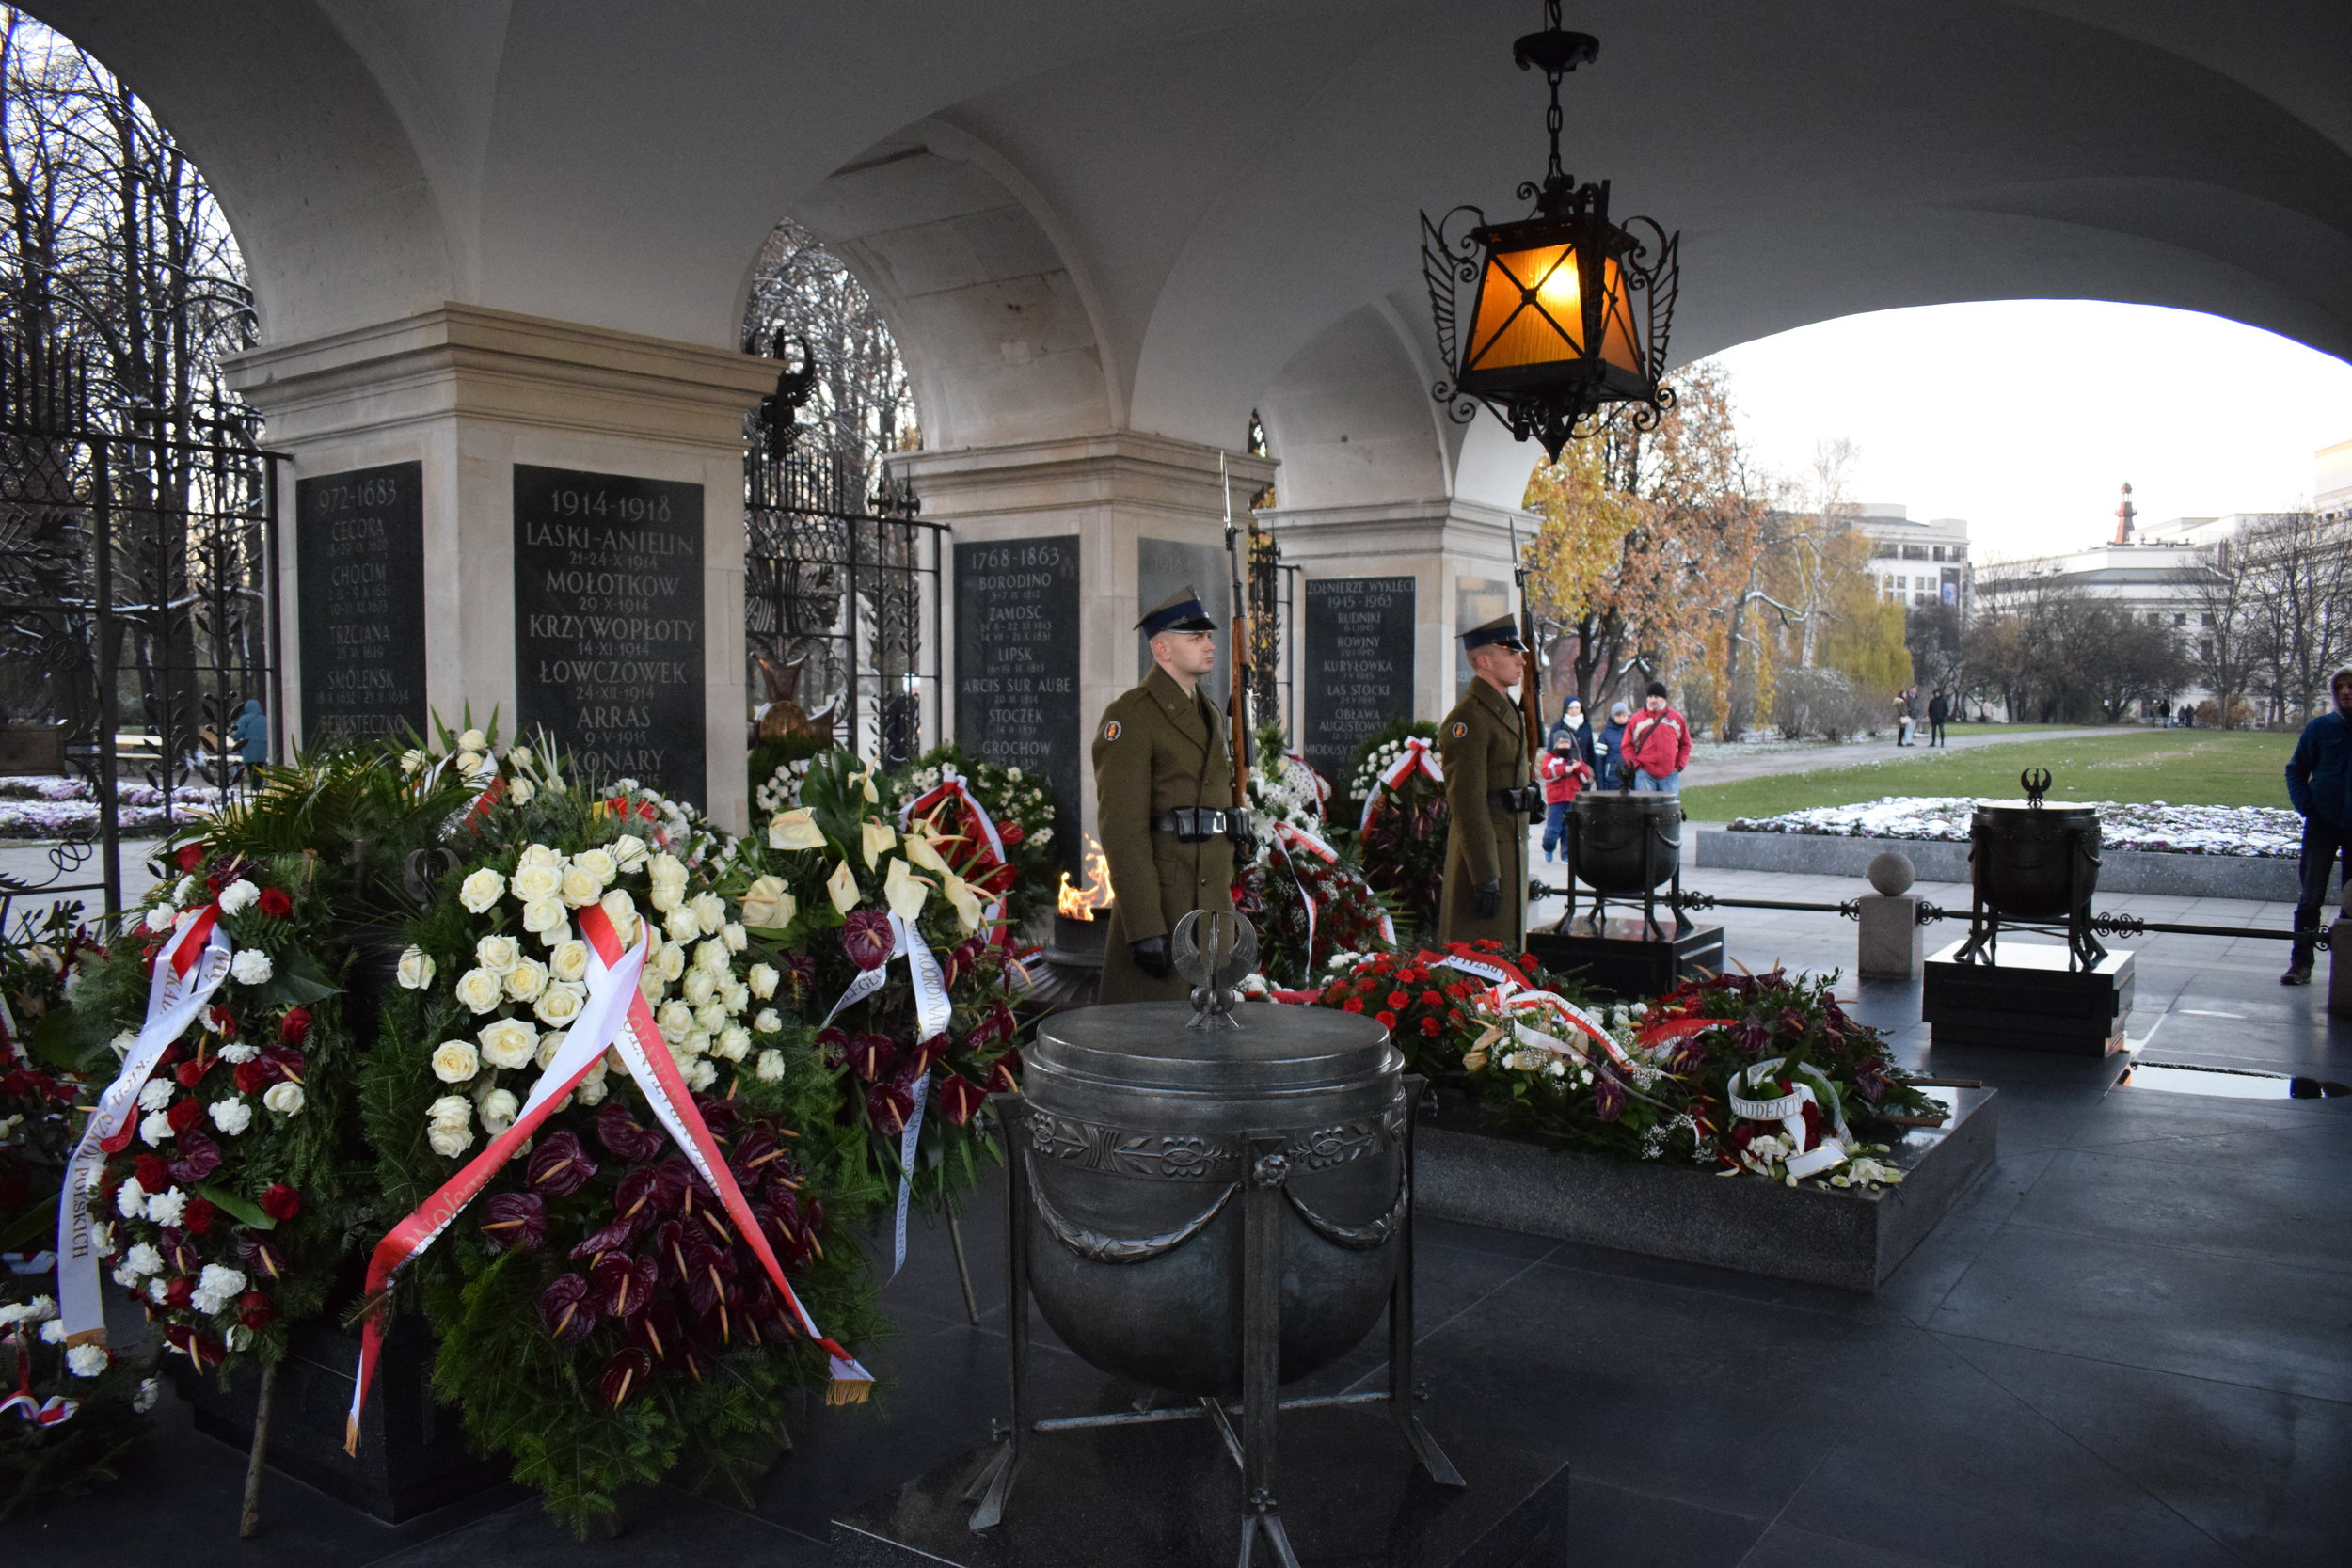 Tomb-Unknown-Soldier-Warsaw-Poland